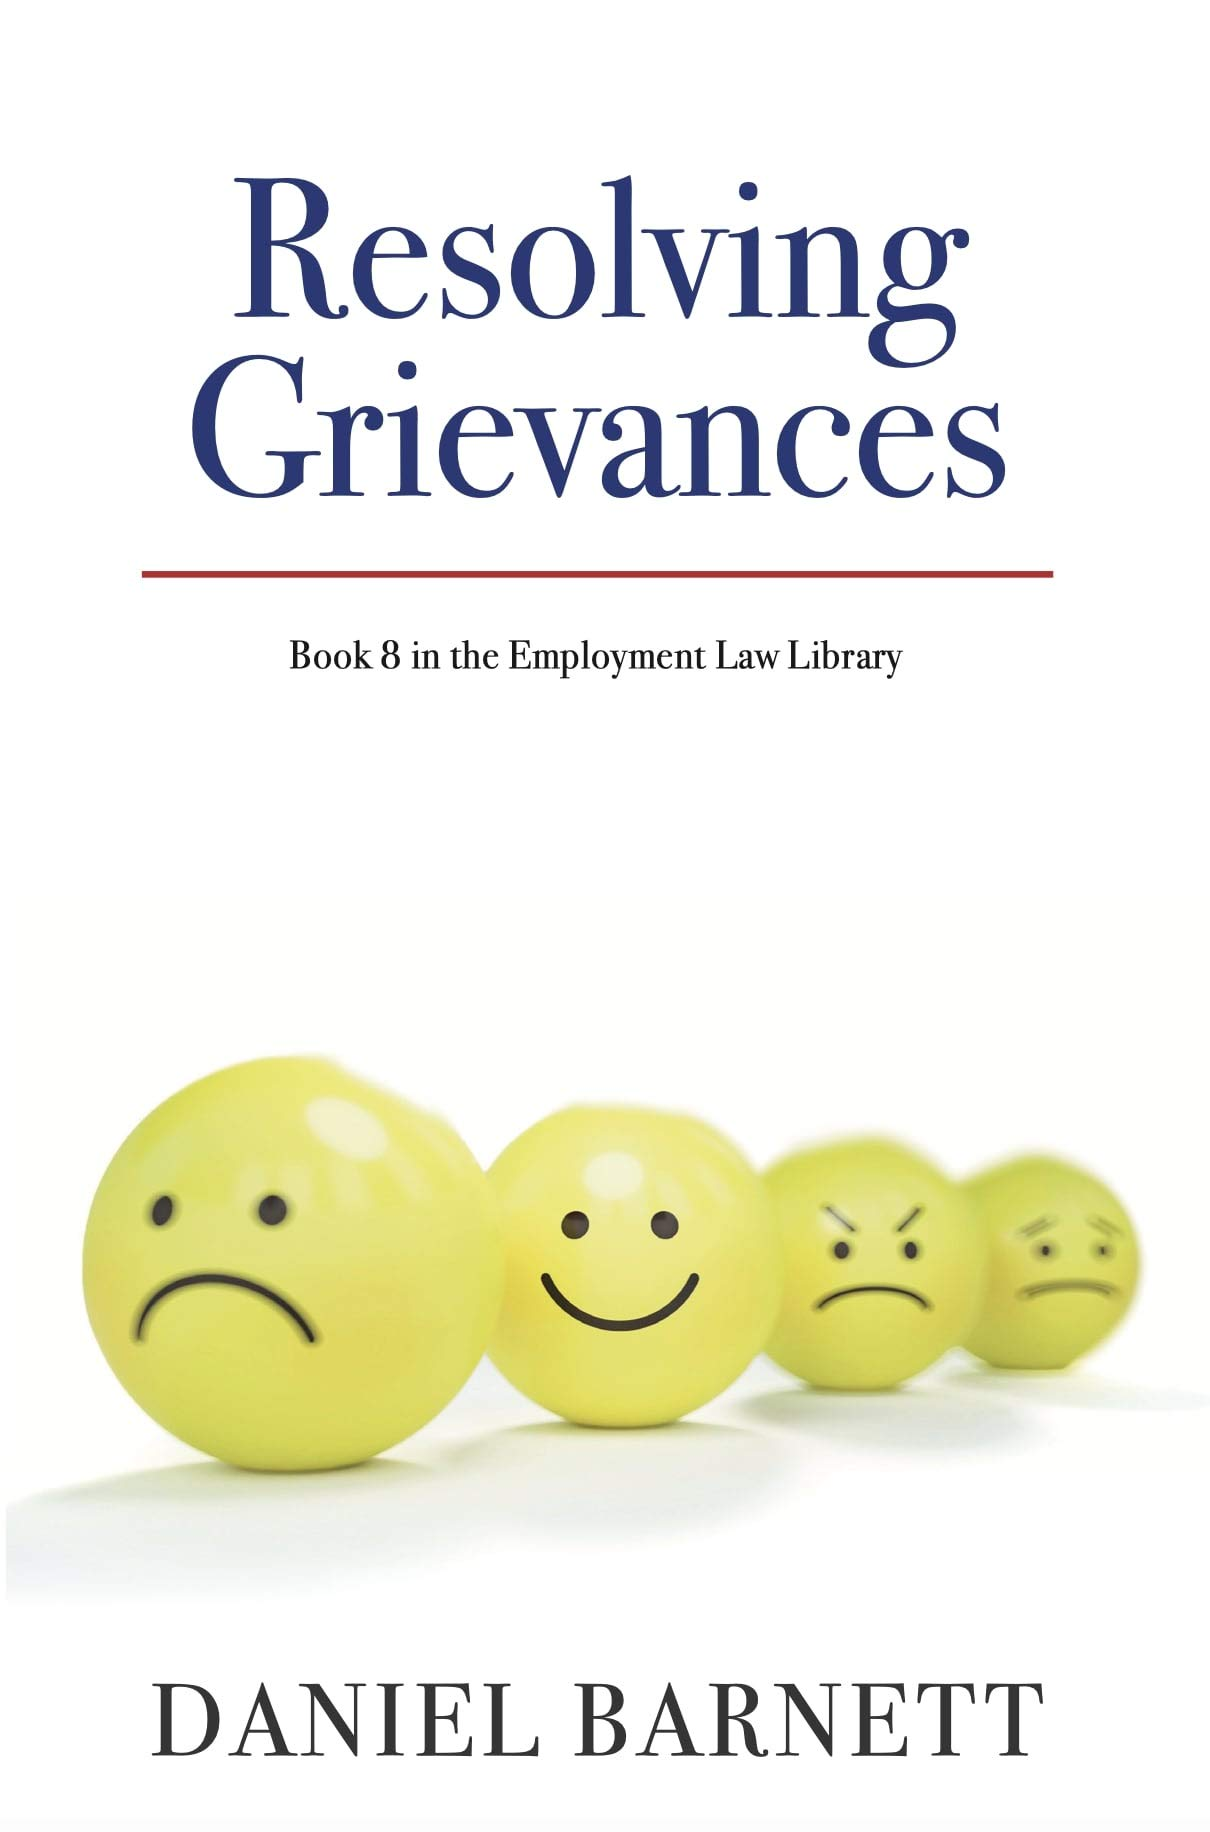 Resolving Grievances (Employment Law Library Book 8)